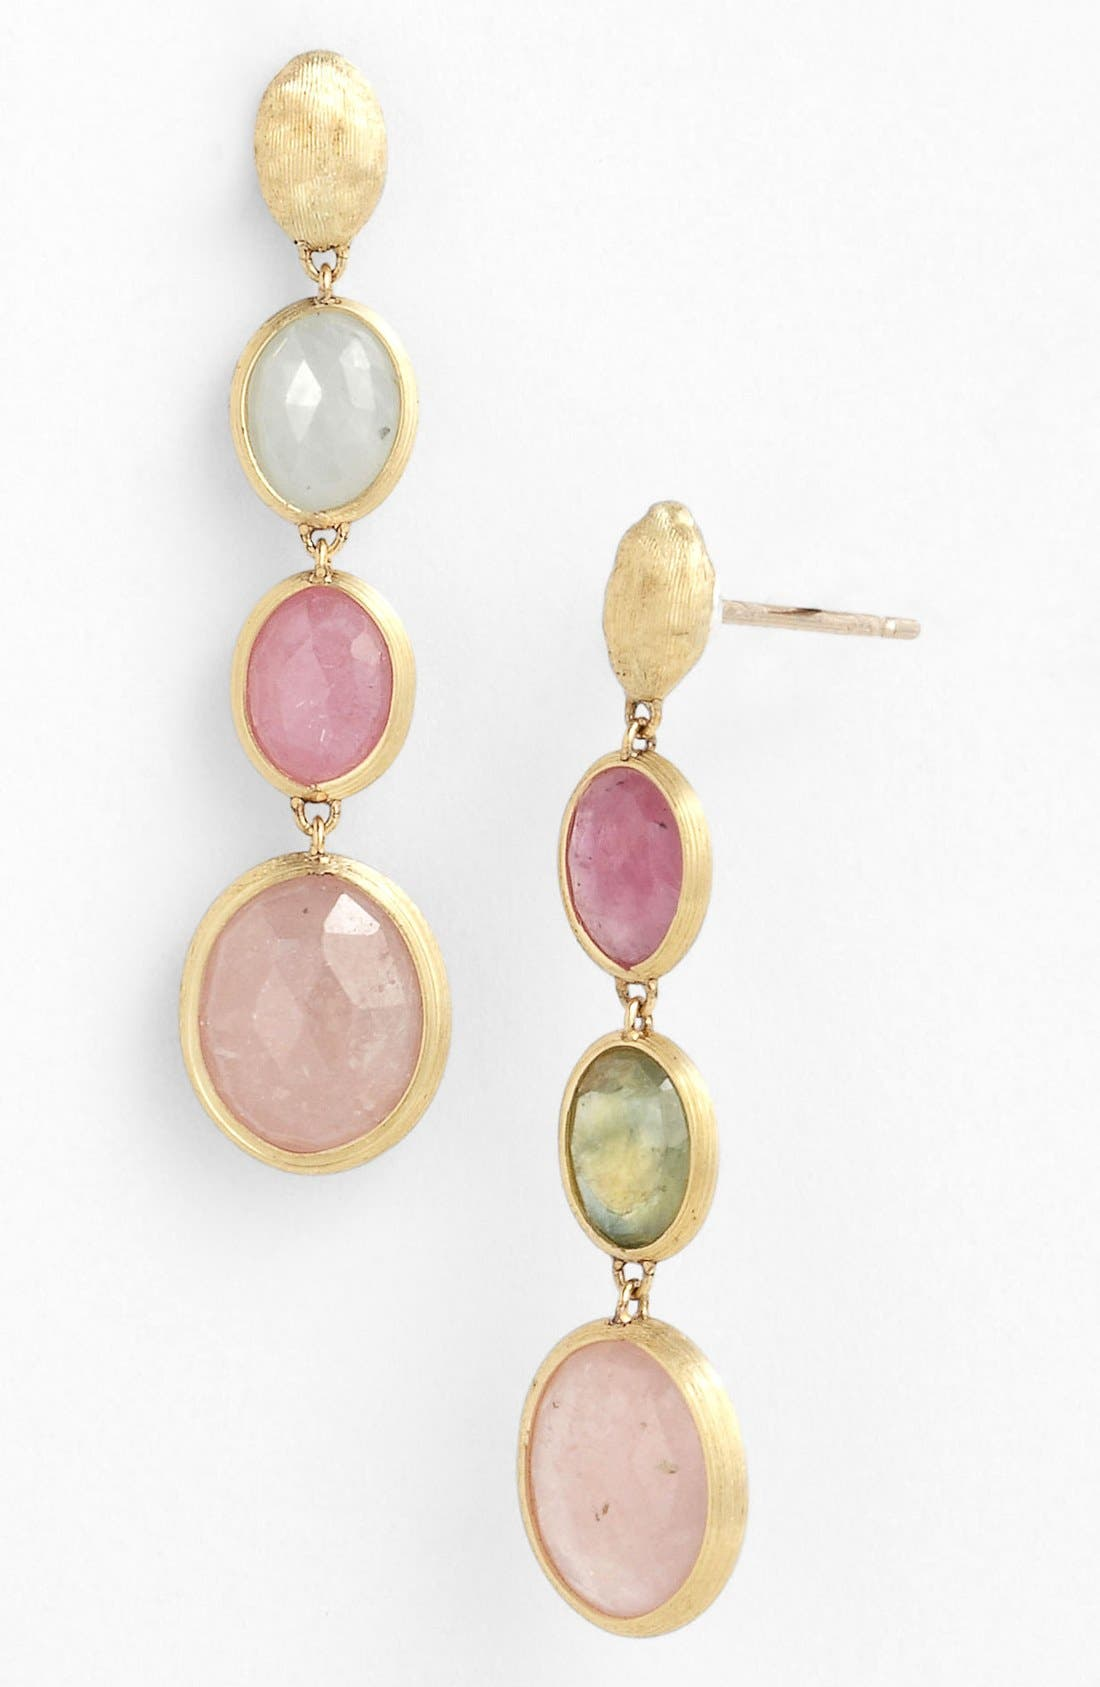 Alternate Image 1 Selected - Marco Bicego 'Siviglia' Stone Drop Earrings